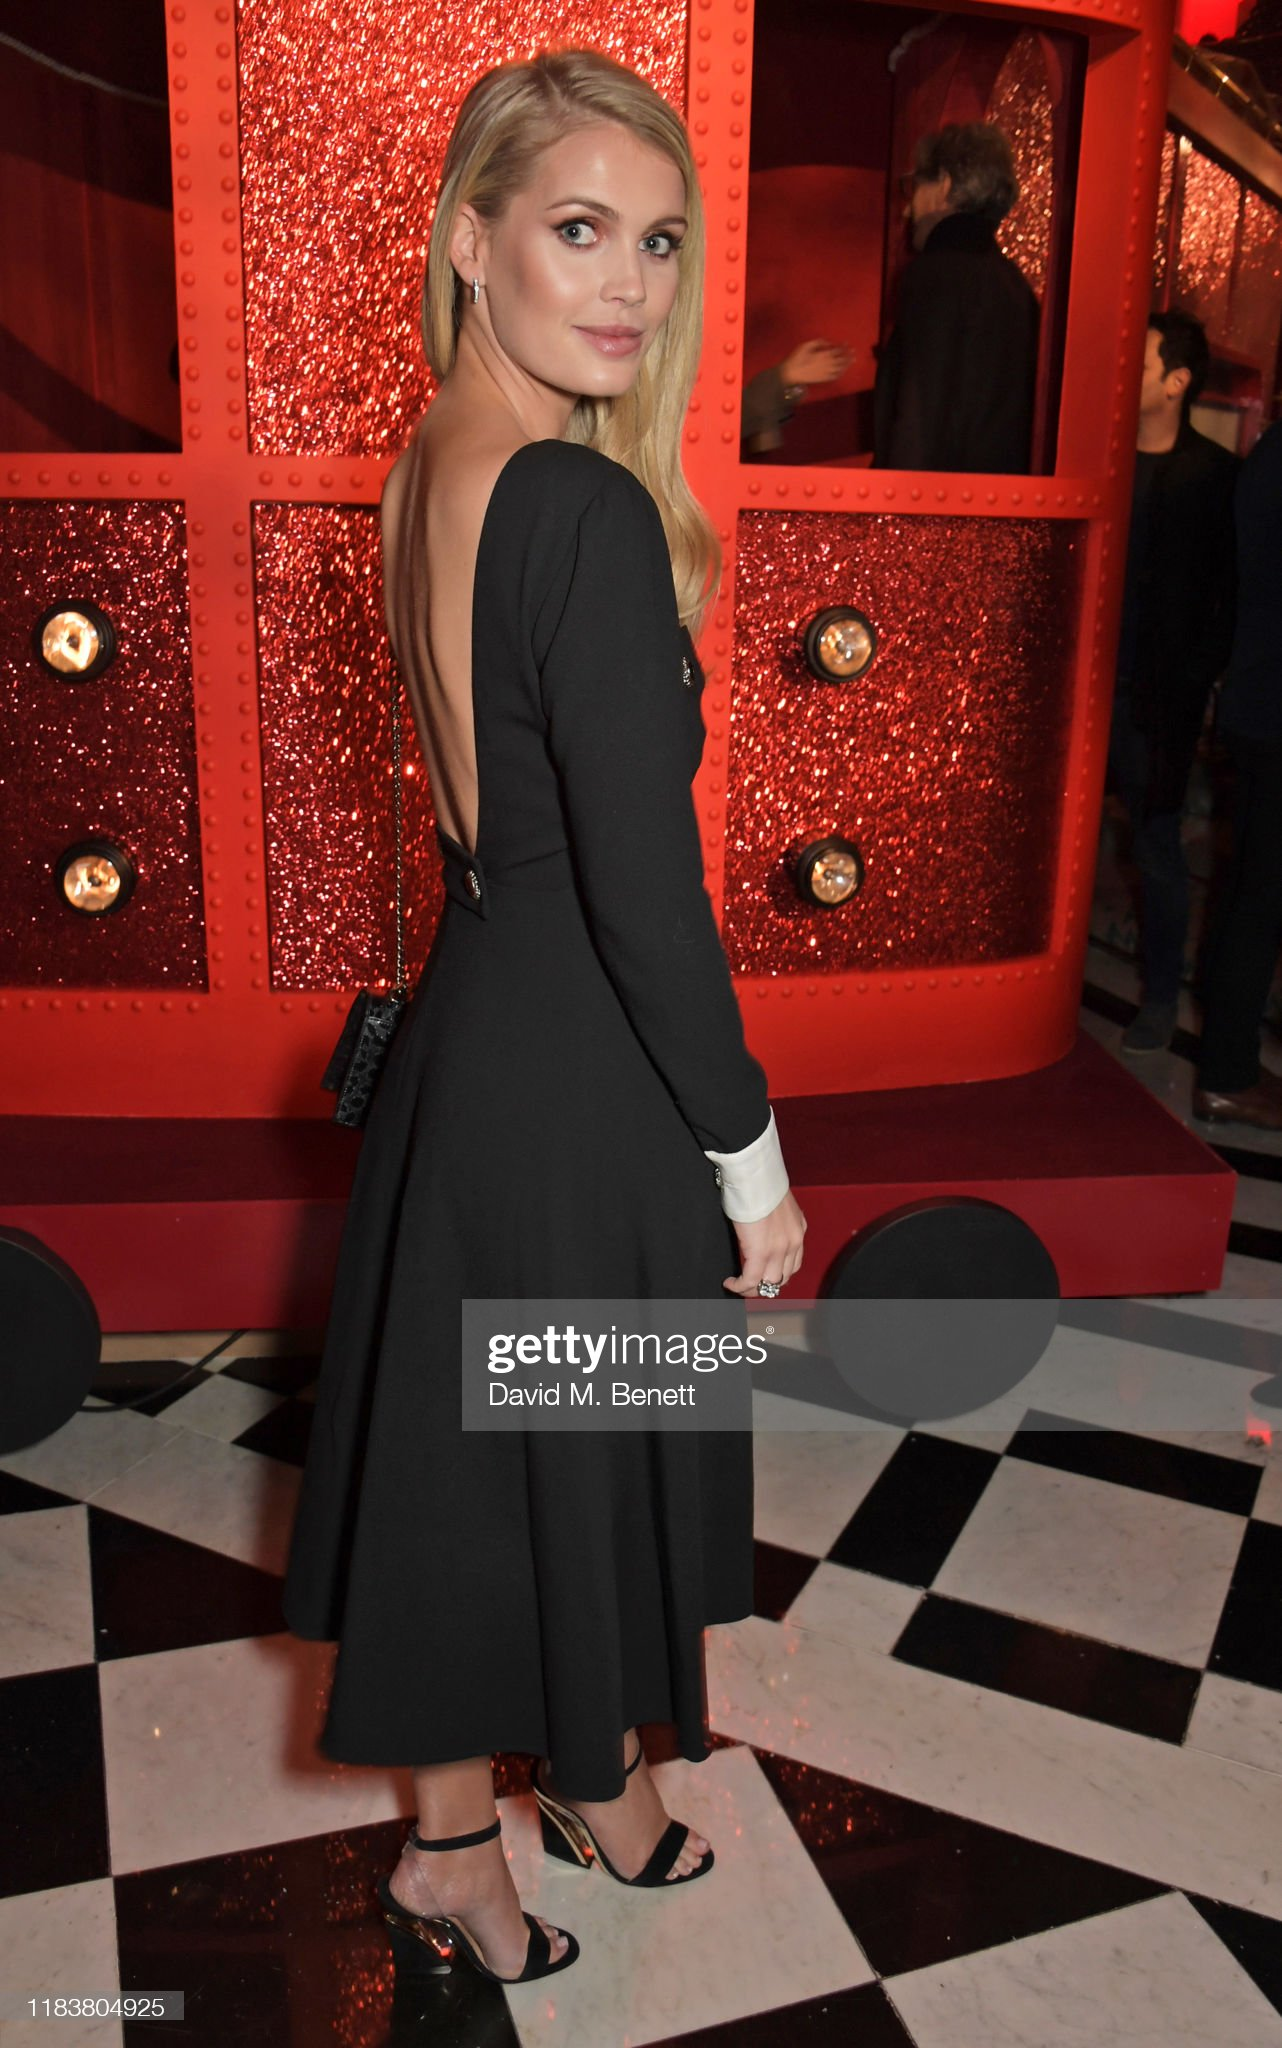 https://media.gettyimages.com/photos/lady-kitty-spencer-attends-the-launch-of-the-claridges-christmas-tree-picture-id1183804925?s=2048x2048